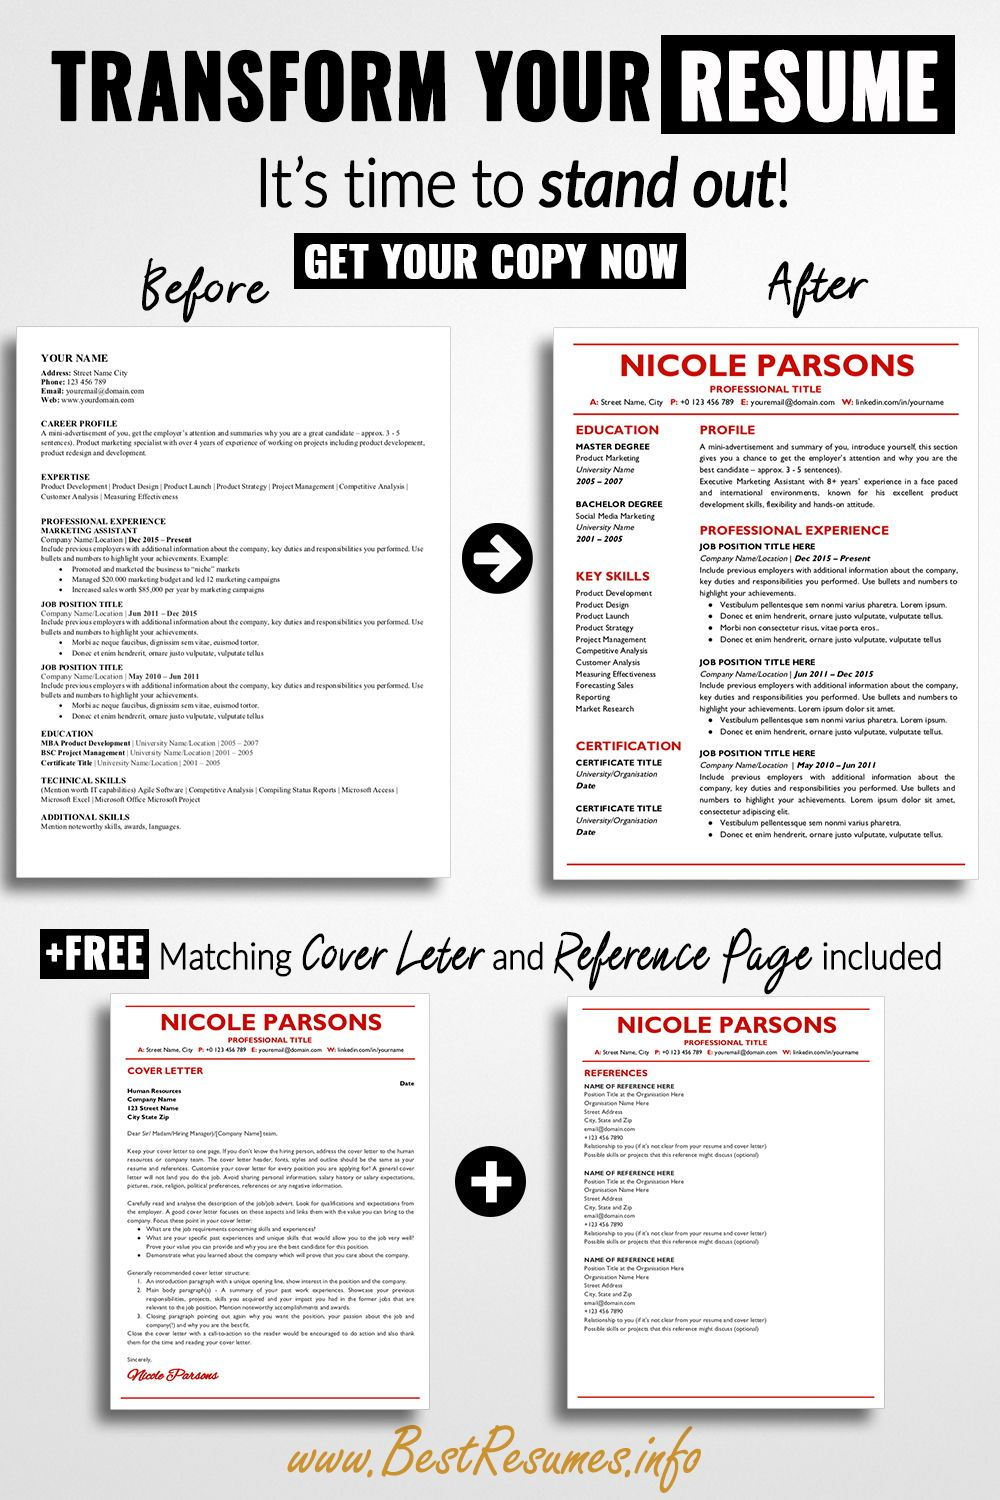 Professional Resume Template Nicole Parsons BestResumes